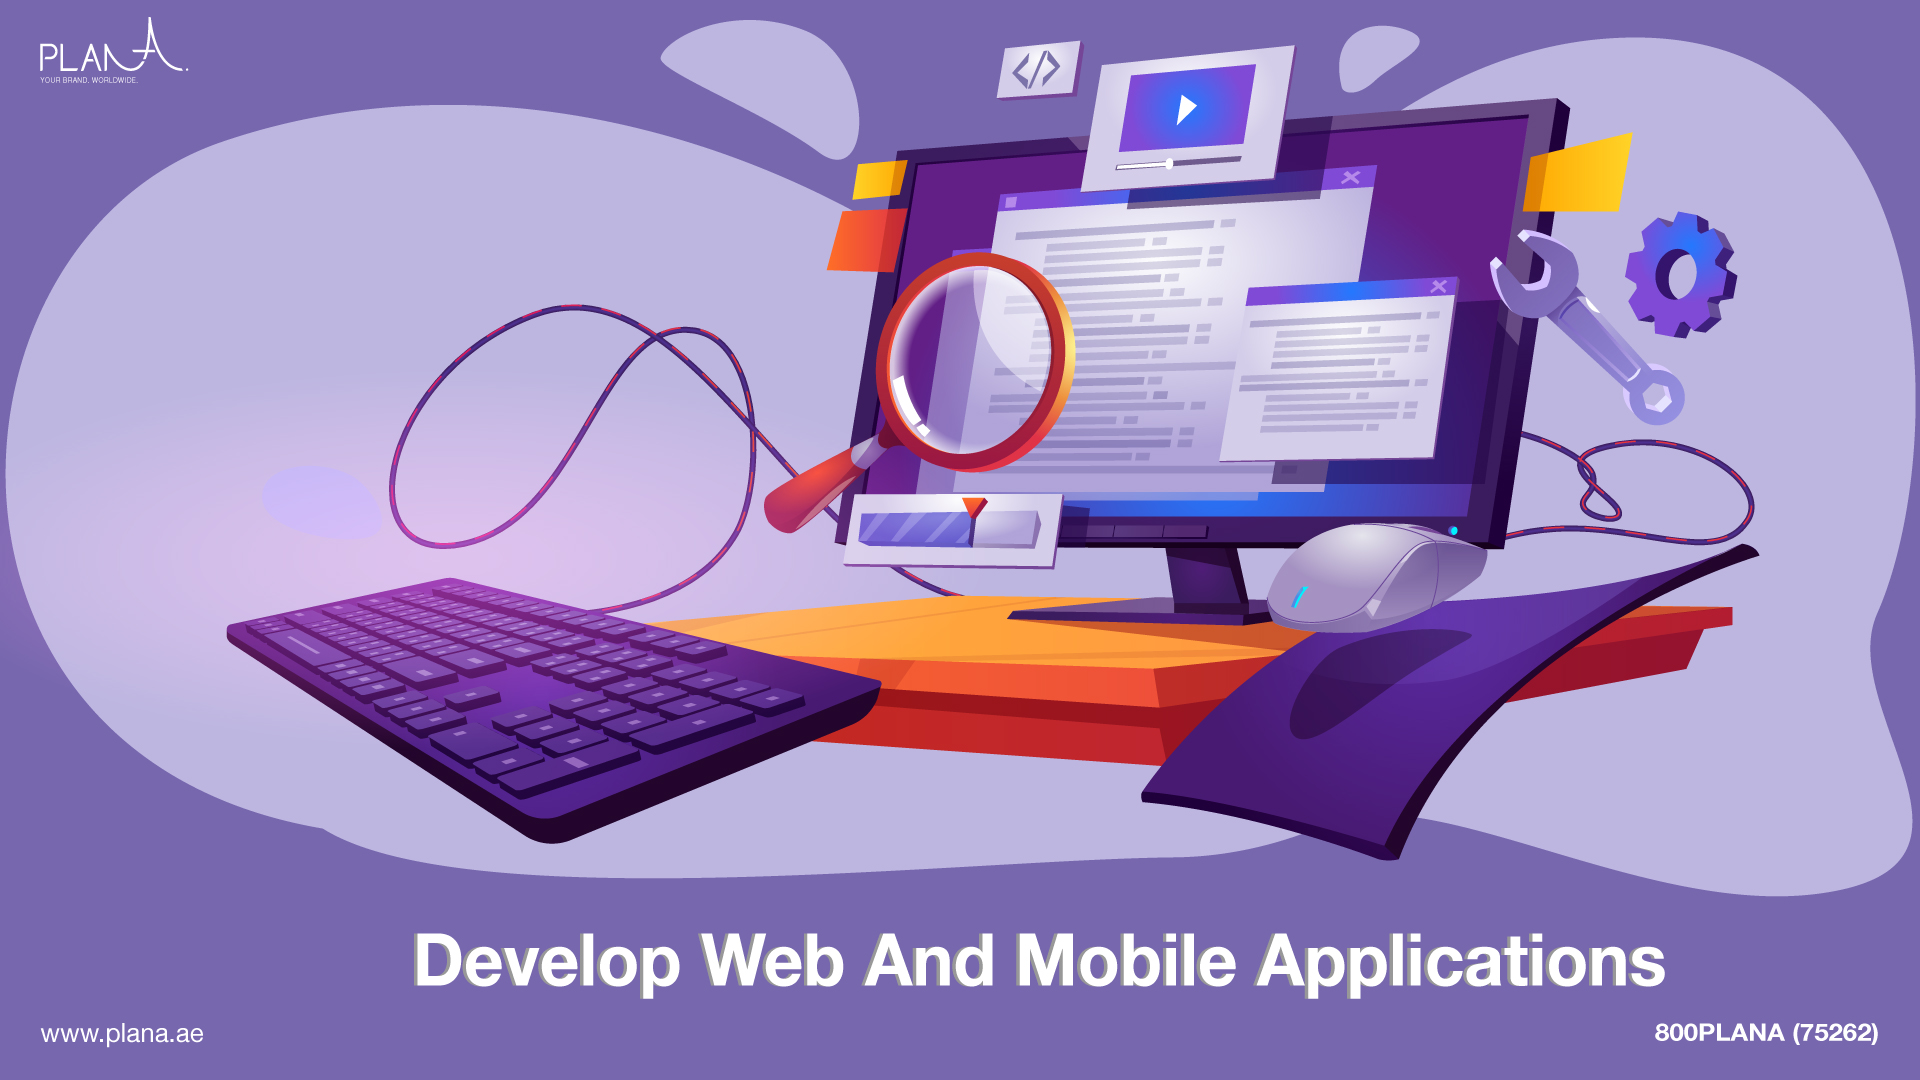 How do I find a company to develop web, and mobile applications in Dubai?